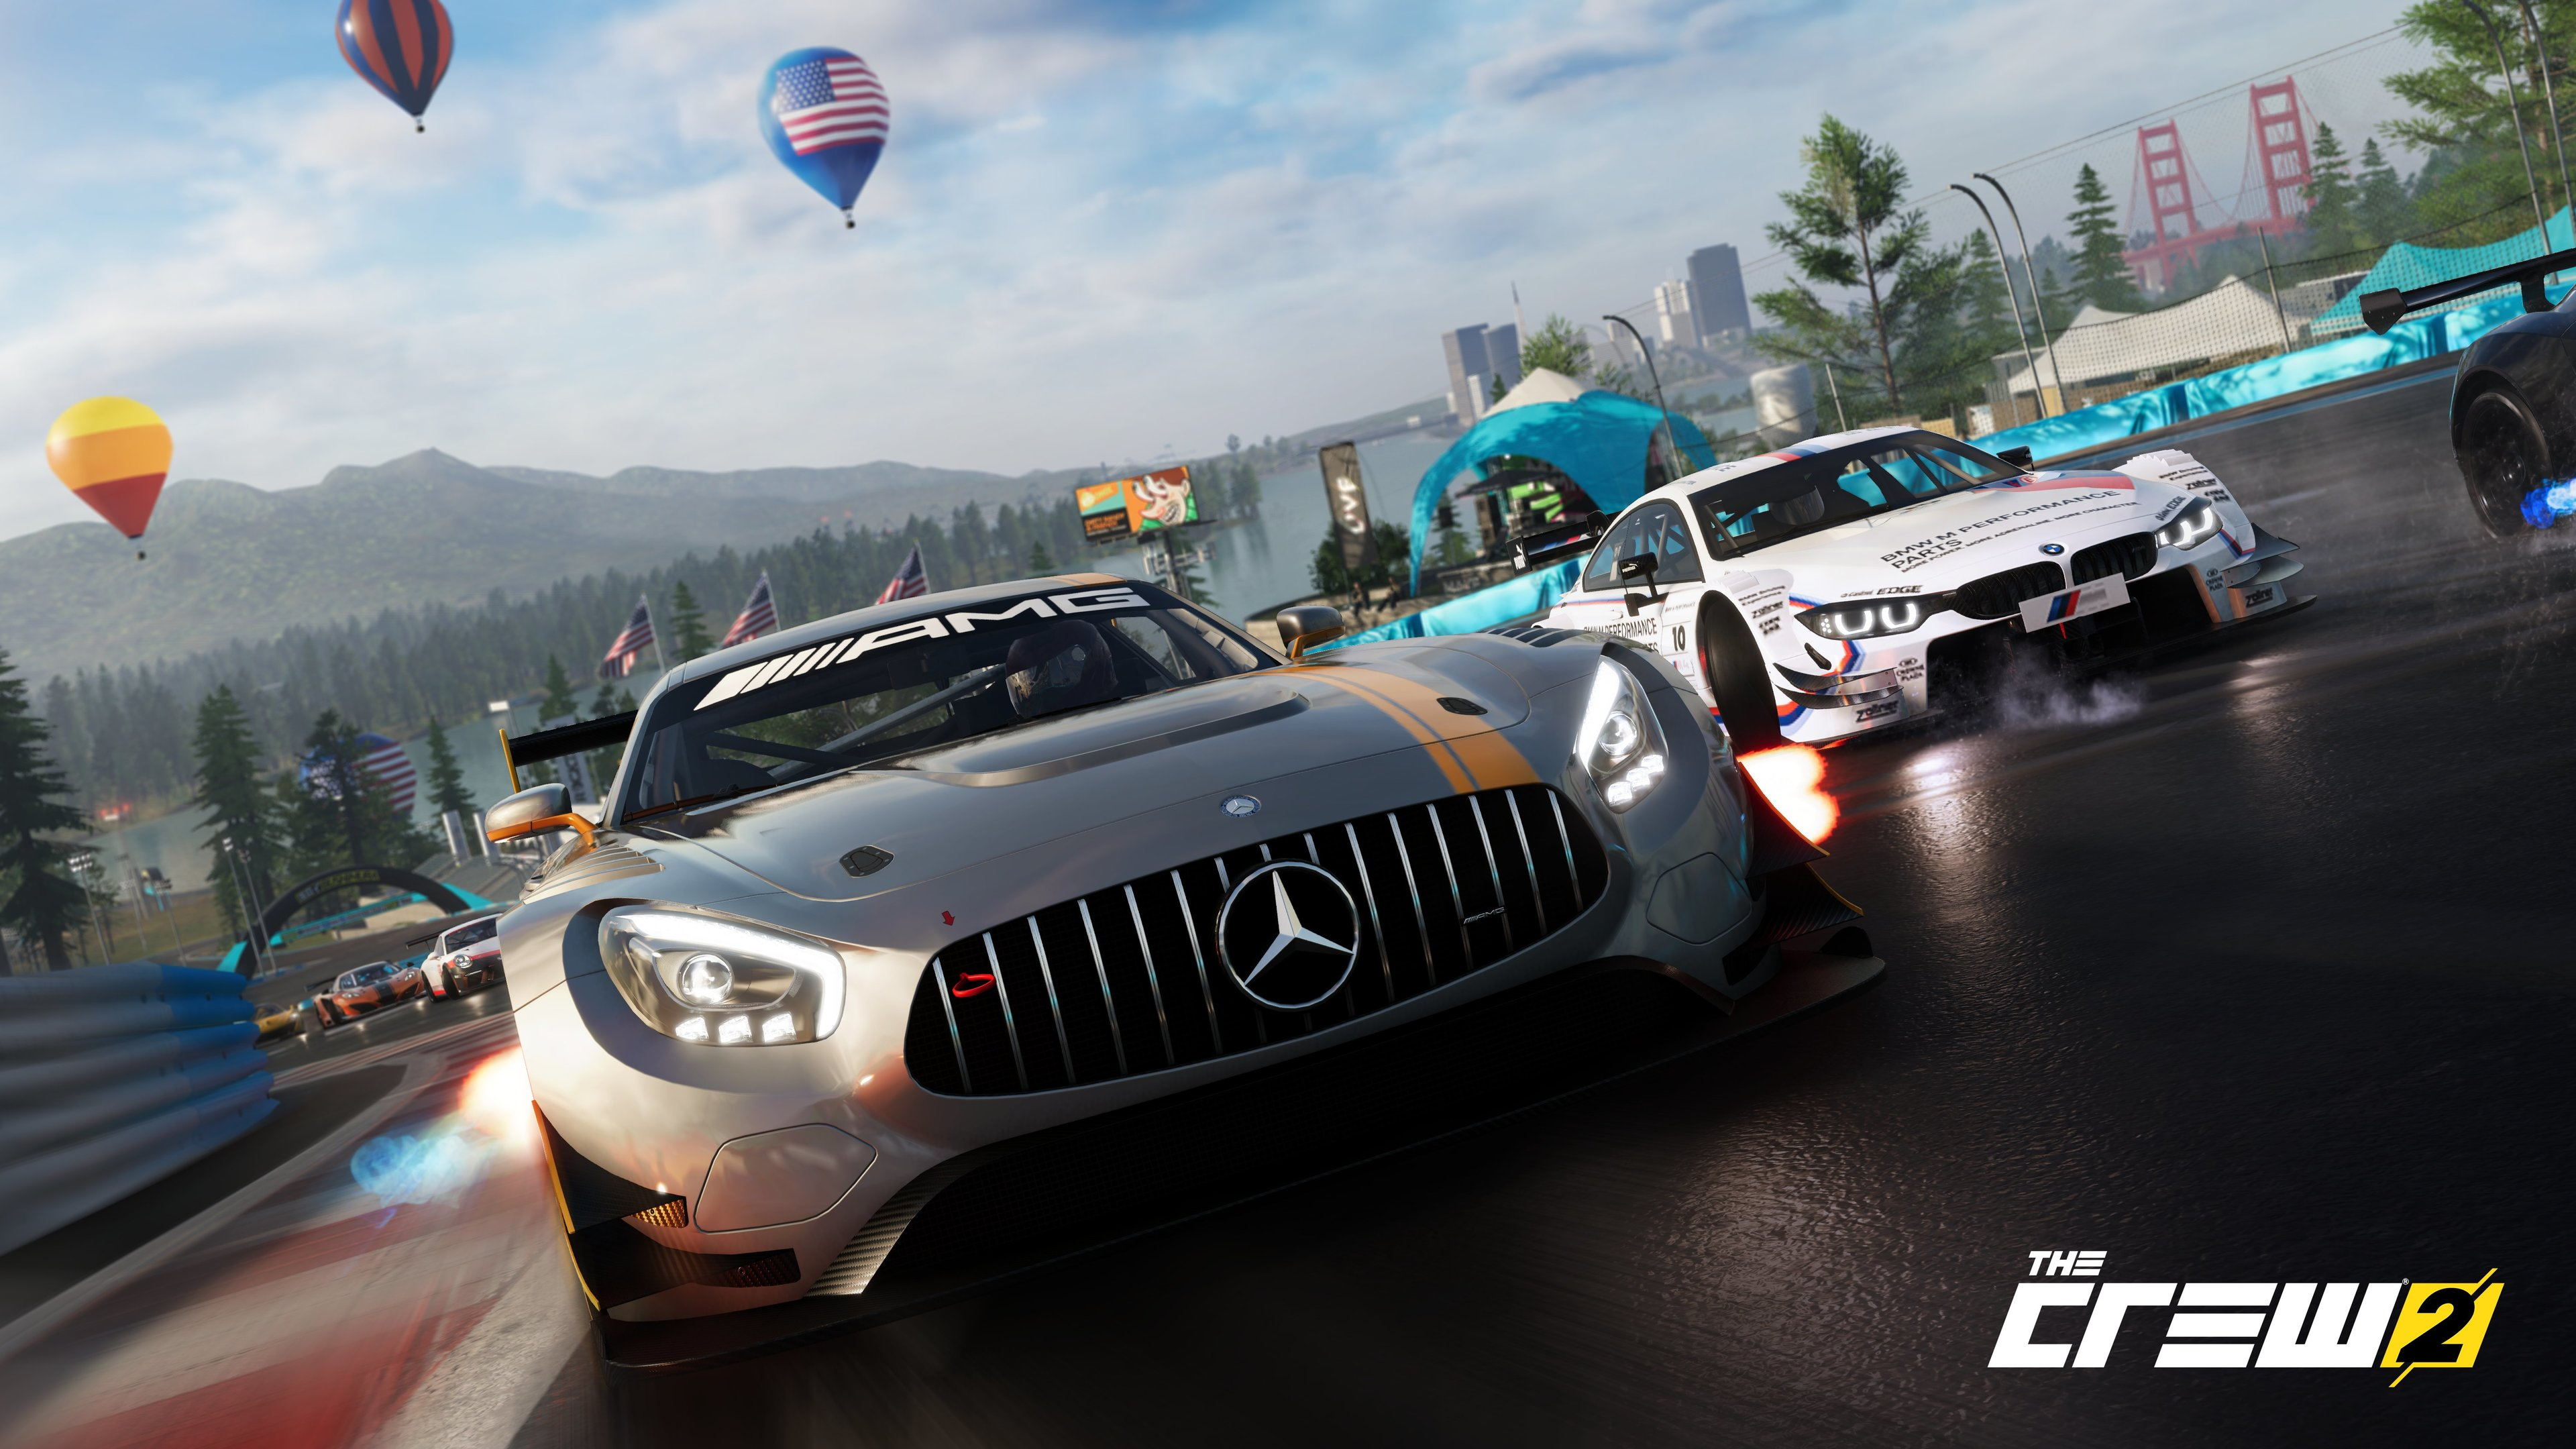 Wallpaper 4k The Crew 2 Mercedes Amg Cars 5k 4k Wallpapers